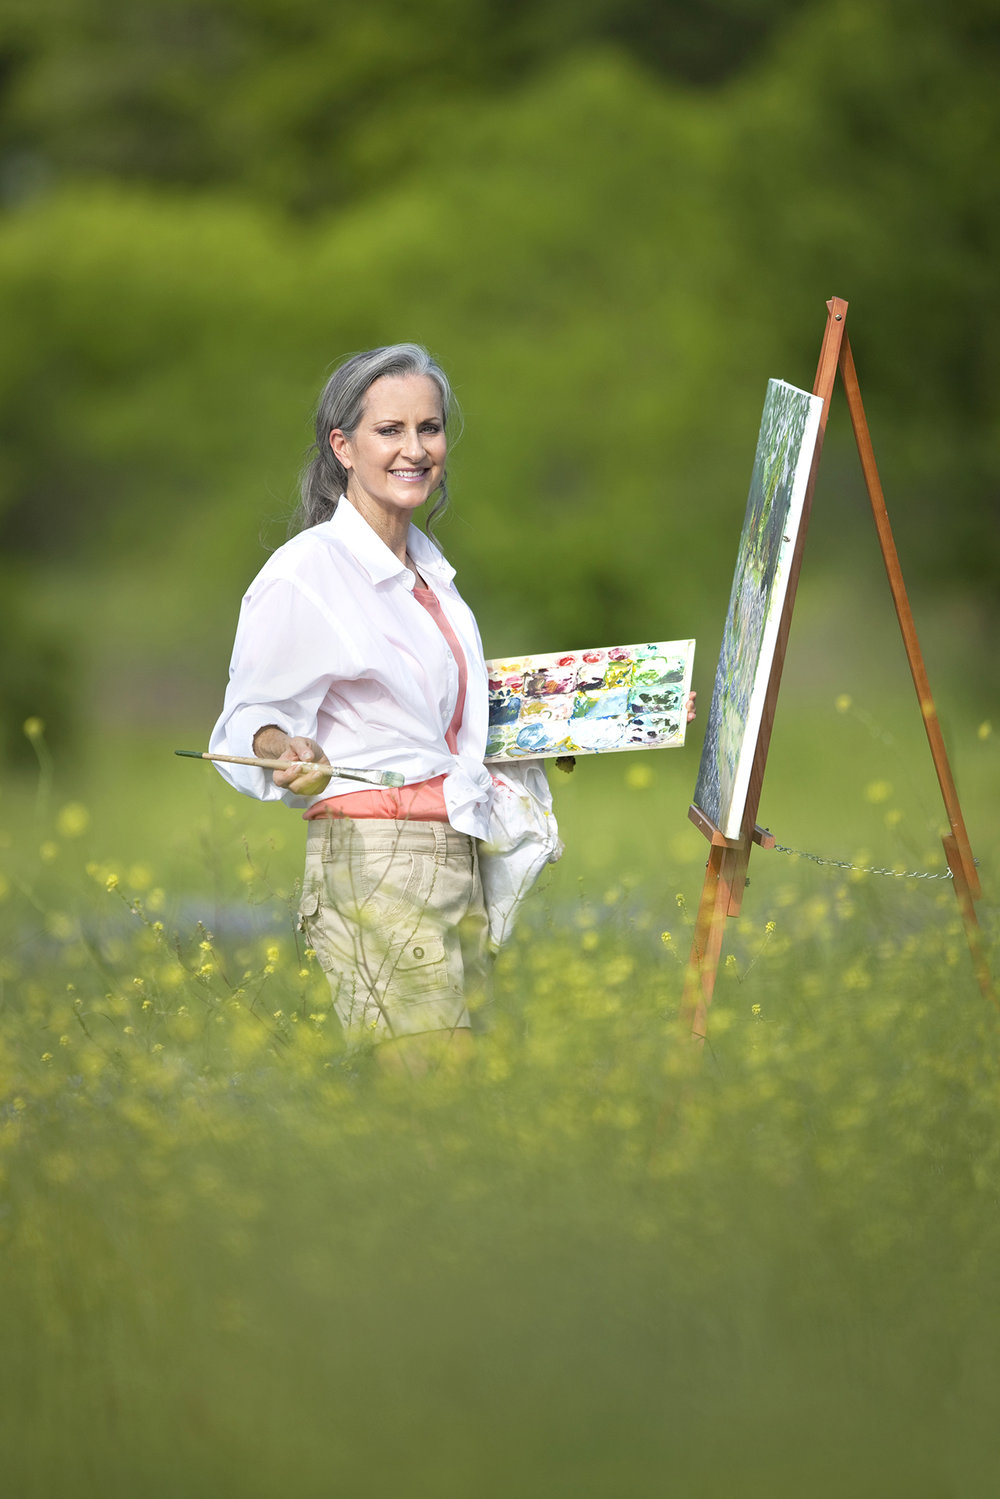 Environmental Portrait of a Woman in Wildflower Garden Painting